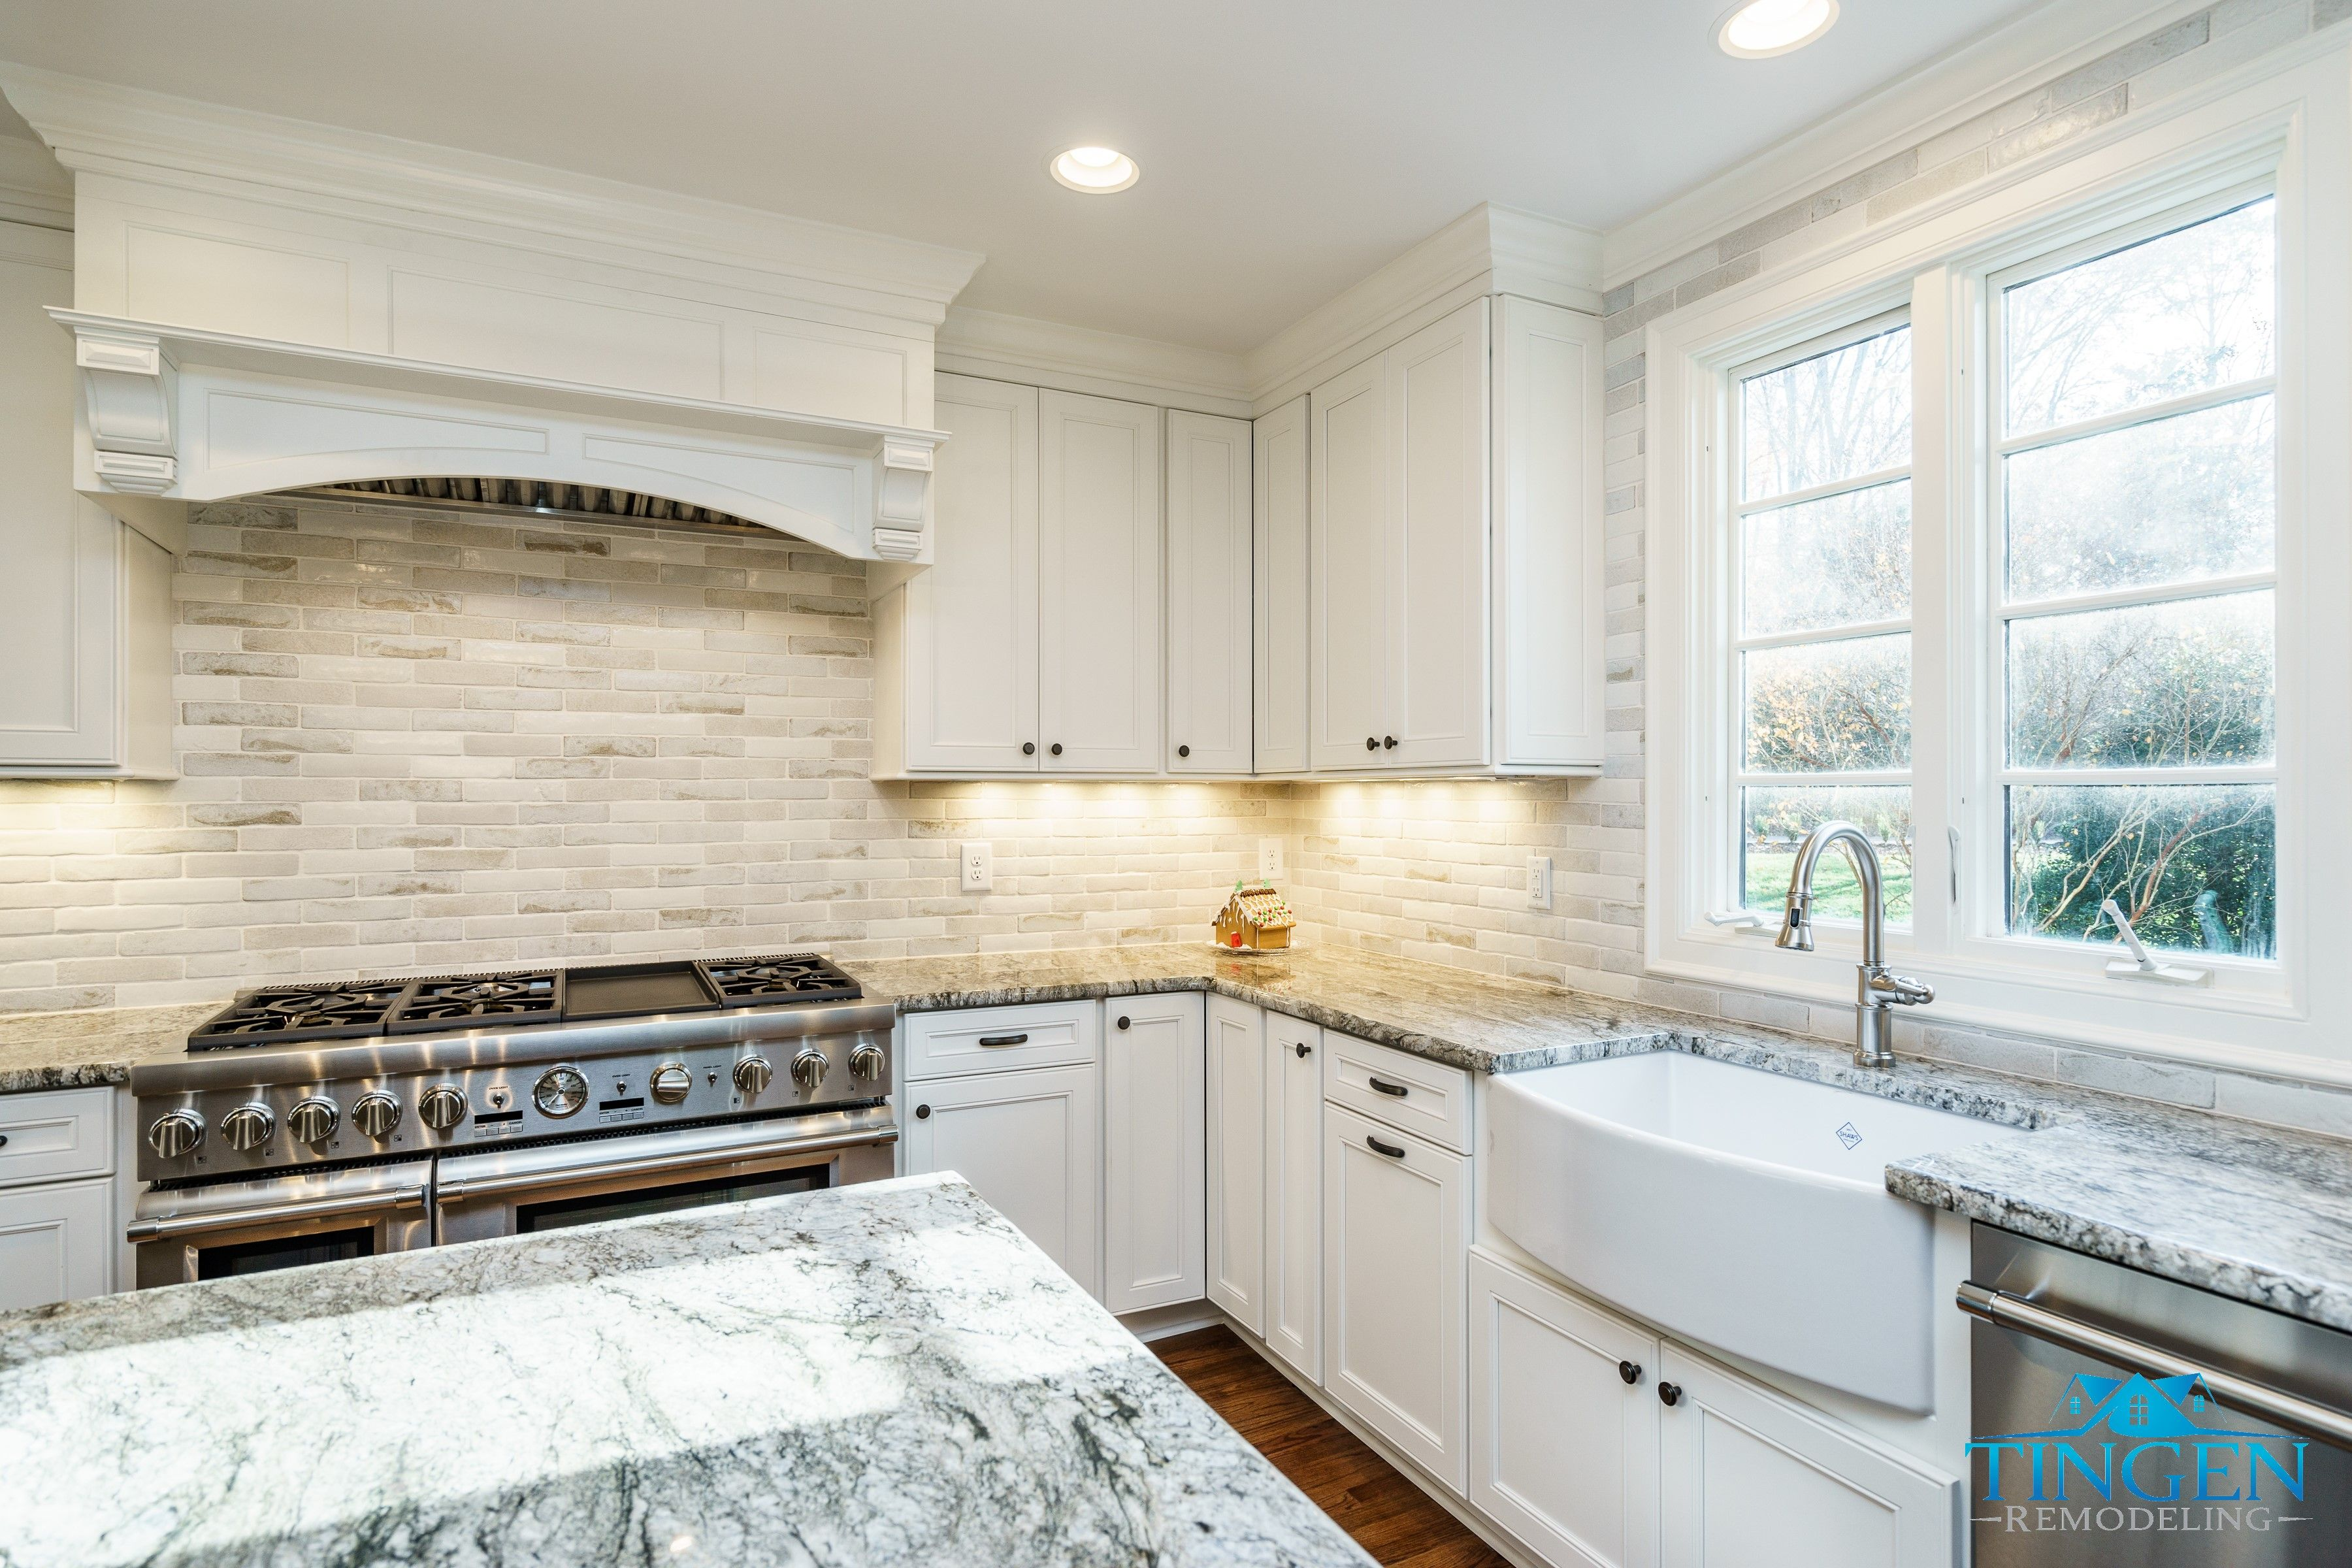 Tingen Remodeling Raleigh Nc Thermador Kitchen Cabinets Brizo Rohl Sink Faucet Remodel Remod Custom Kitchen Remodel Kitchen Remodel Home Remodeling